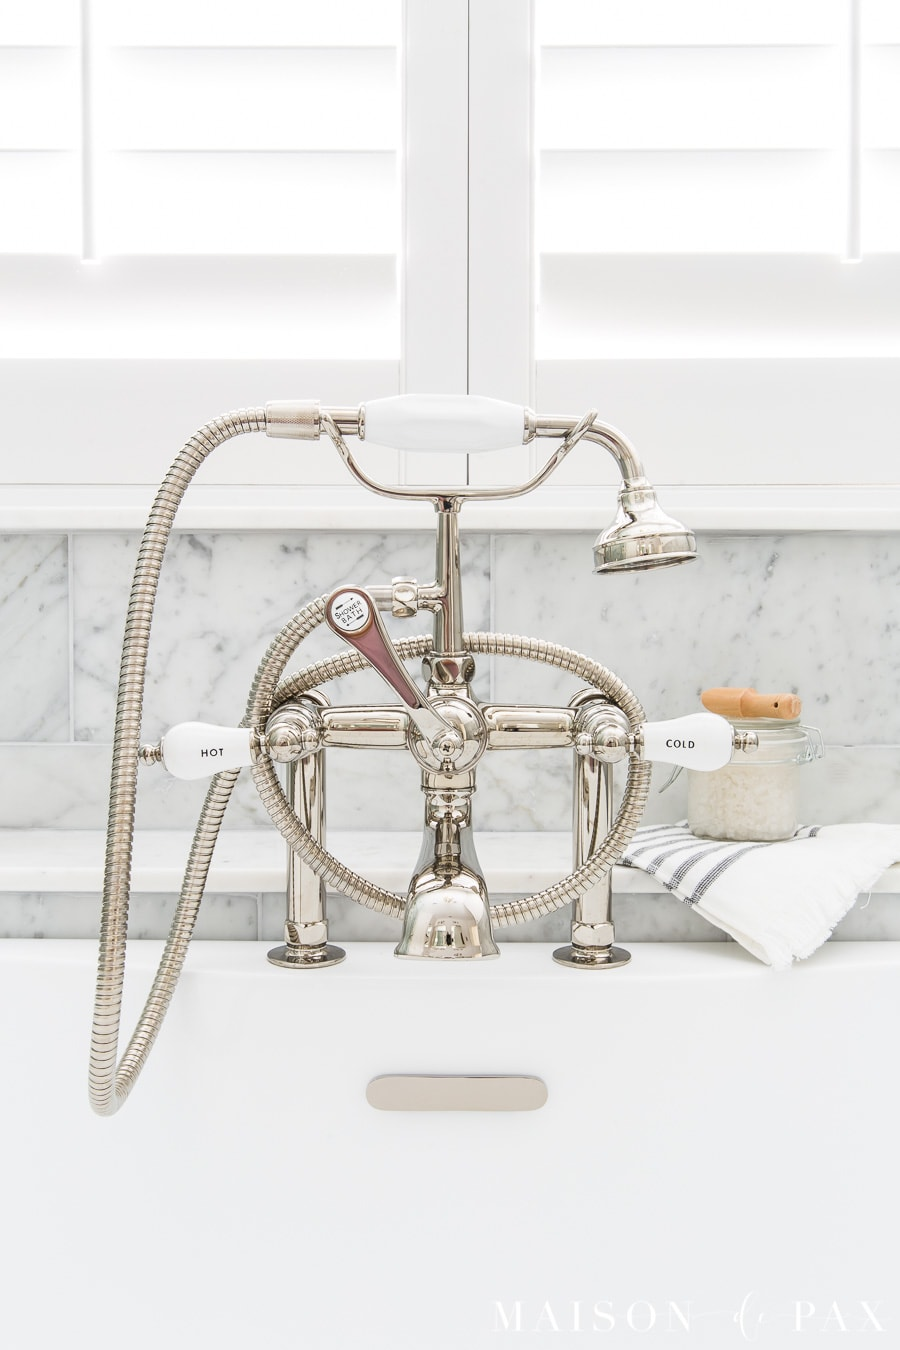 polished nickel classic tub deck mount faucet with handheld shower | Maison de Pax